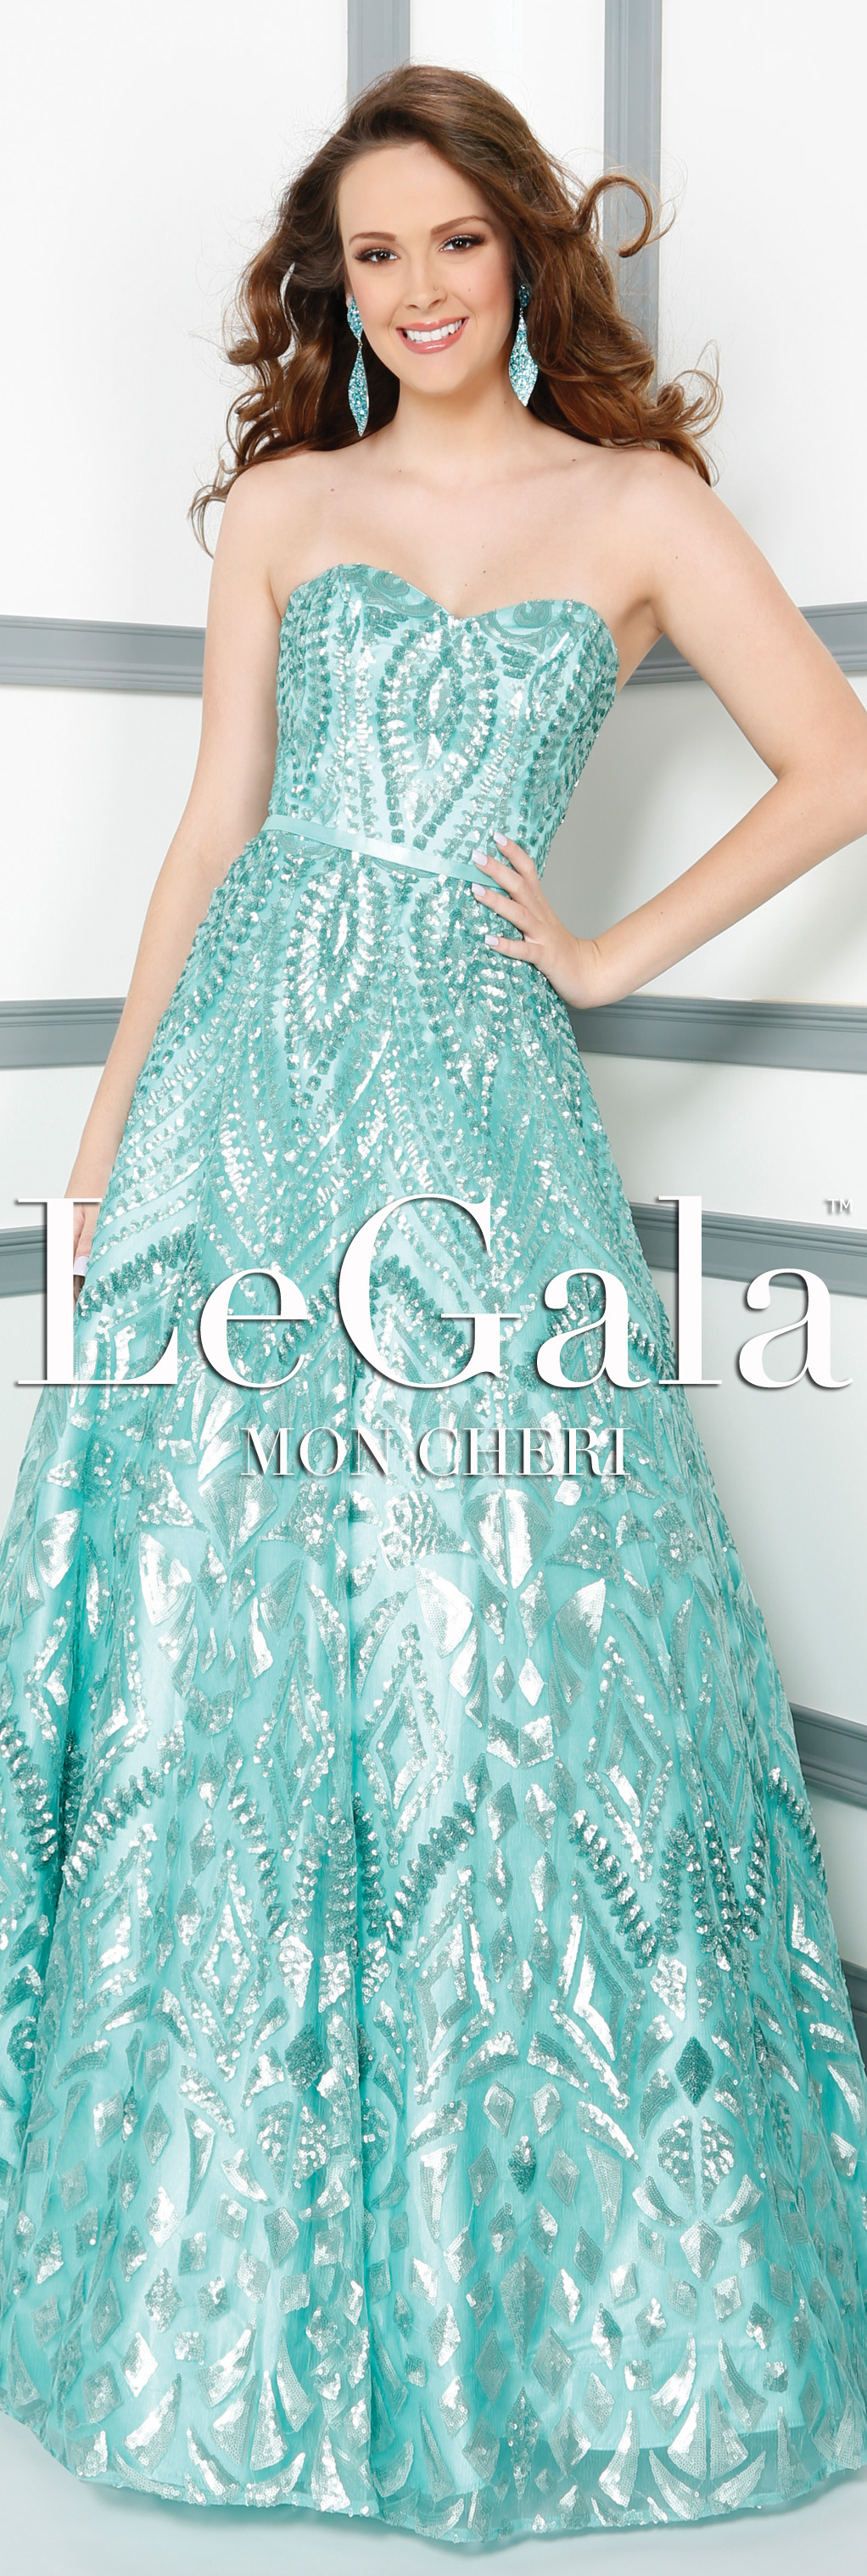 Spring 2016 Prom Dress by Le Gala by Mon Cheri style 116537 ...